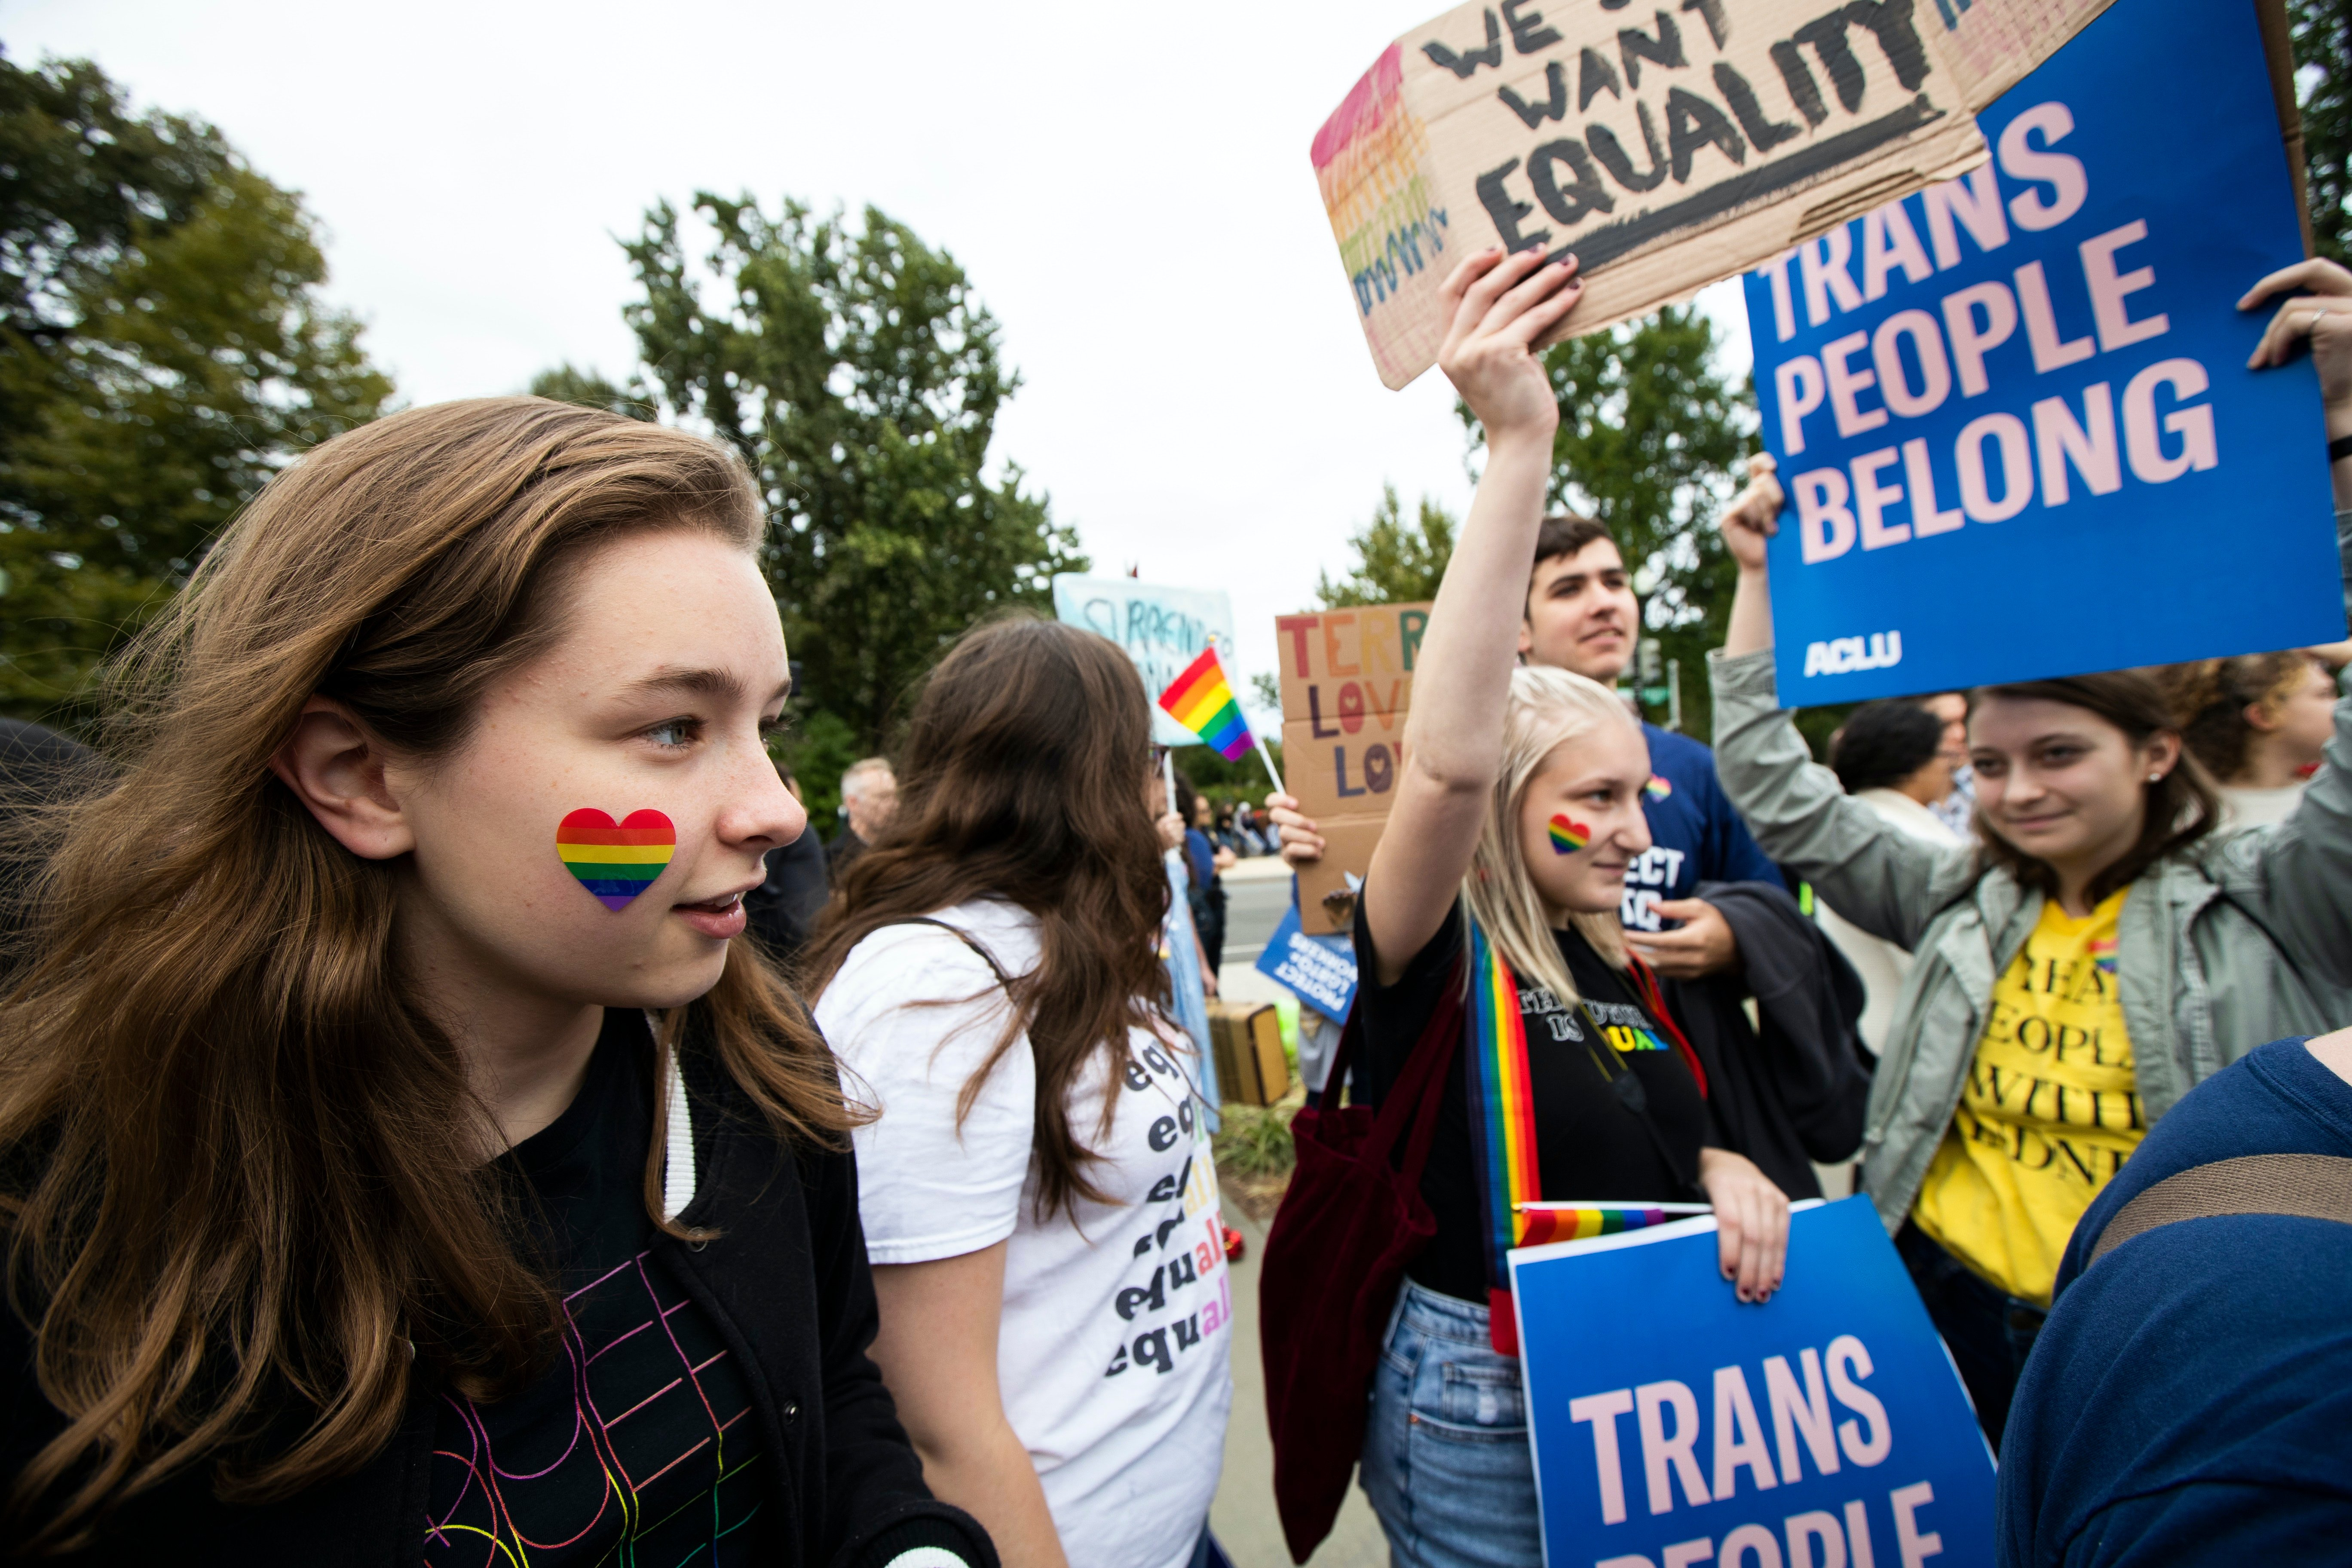 A recent lawsuit has charged the U.S. Department of Education as being complicit in the abuse of LGBTQ students. (AP Photo/Manuel Balce Ceneta)